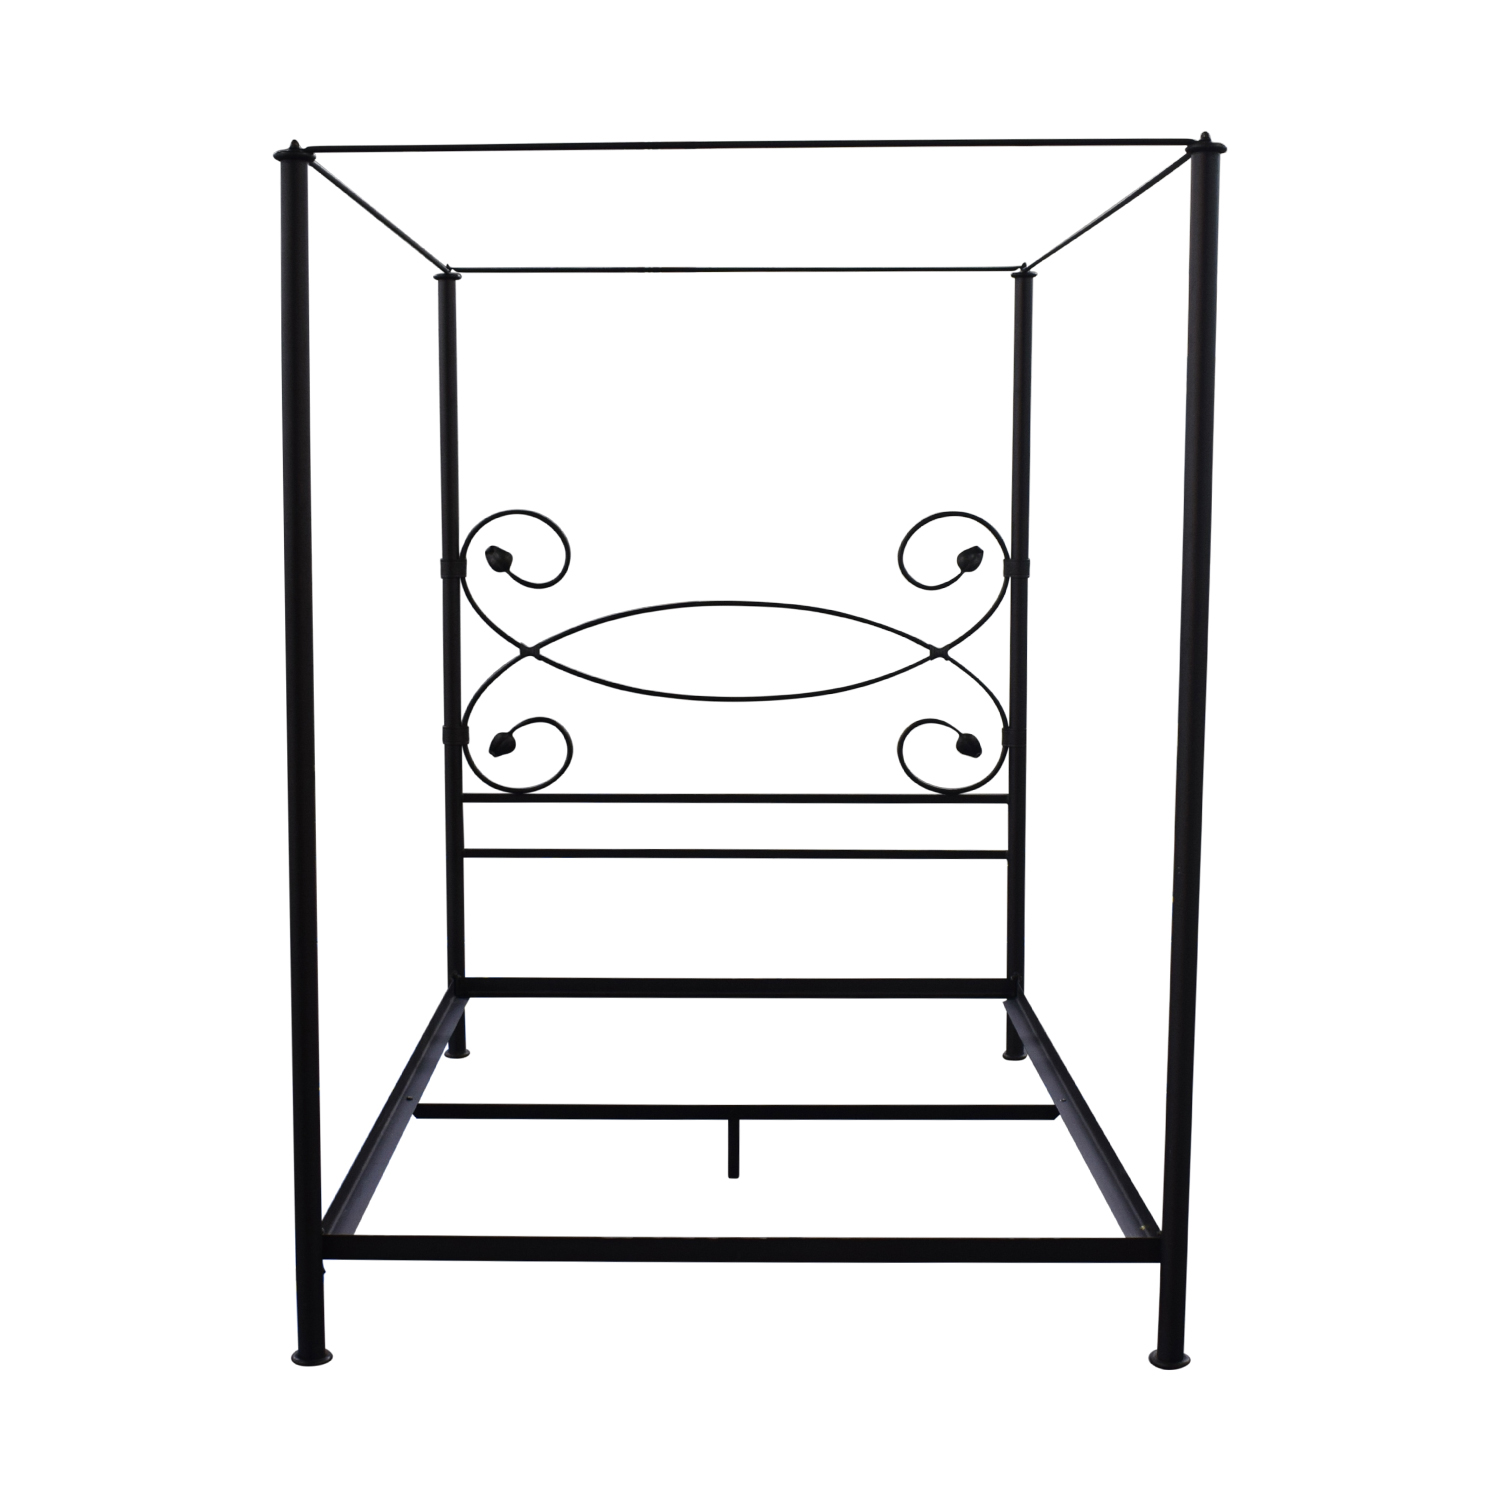 buy Charles P. Rogers Iron Queen Canopy Bed Frame Charles P. Rogers Beds